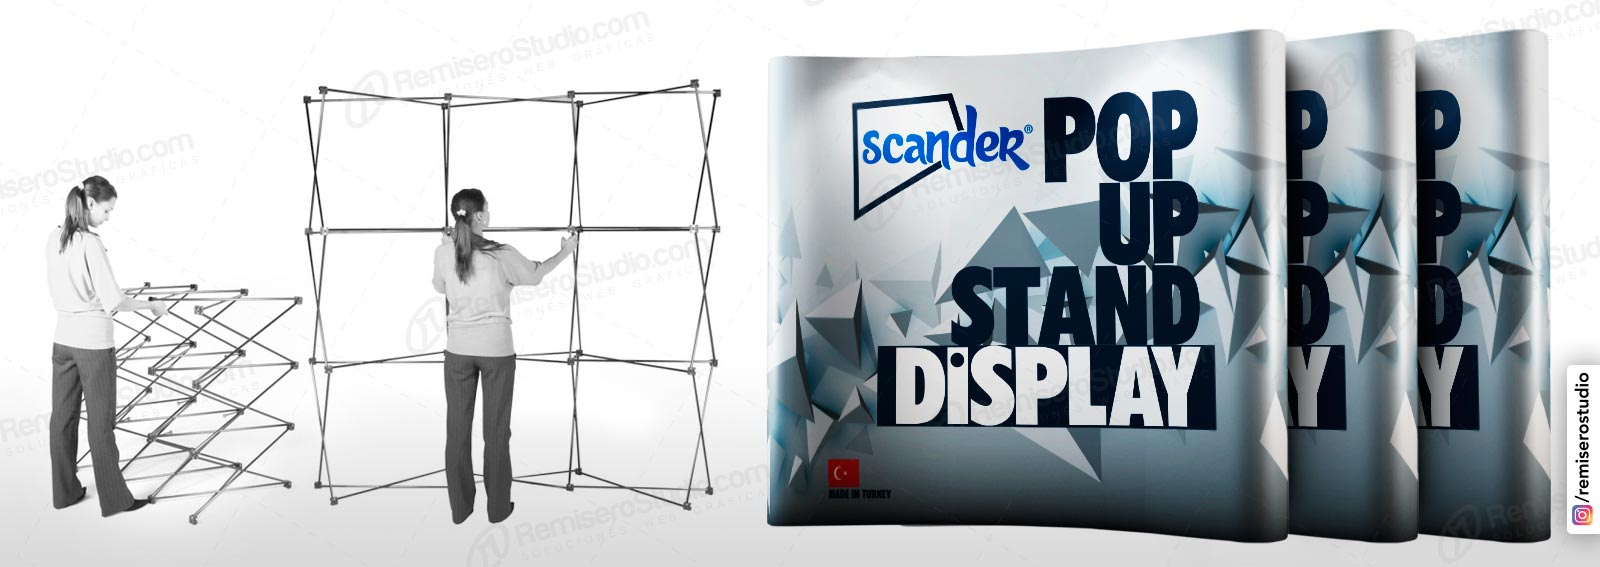 Display Wall Curvo y recto, Backing importado portatil para stand en eventos y ferias, Display Publicitario impreso en alta resolución 1440 dpi, incluye maletin, reflectores y las gráficas.